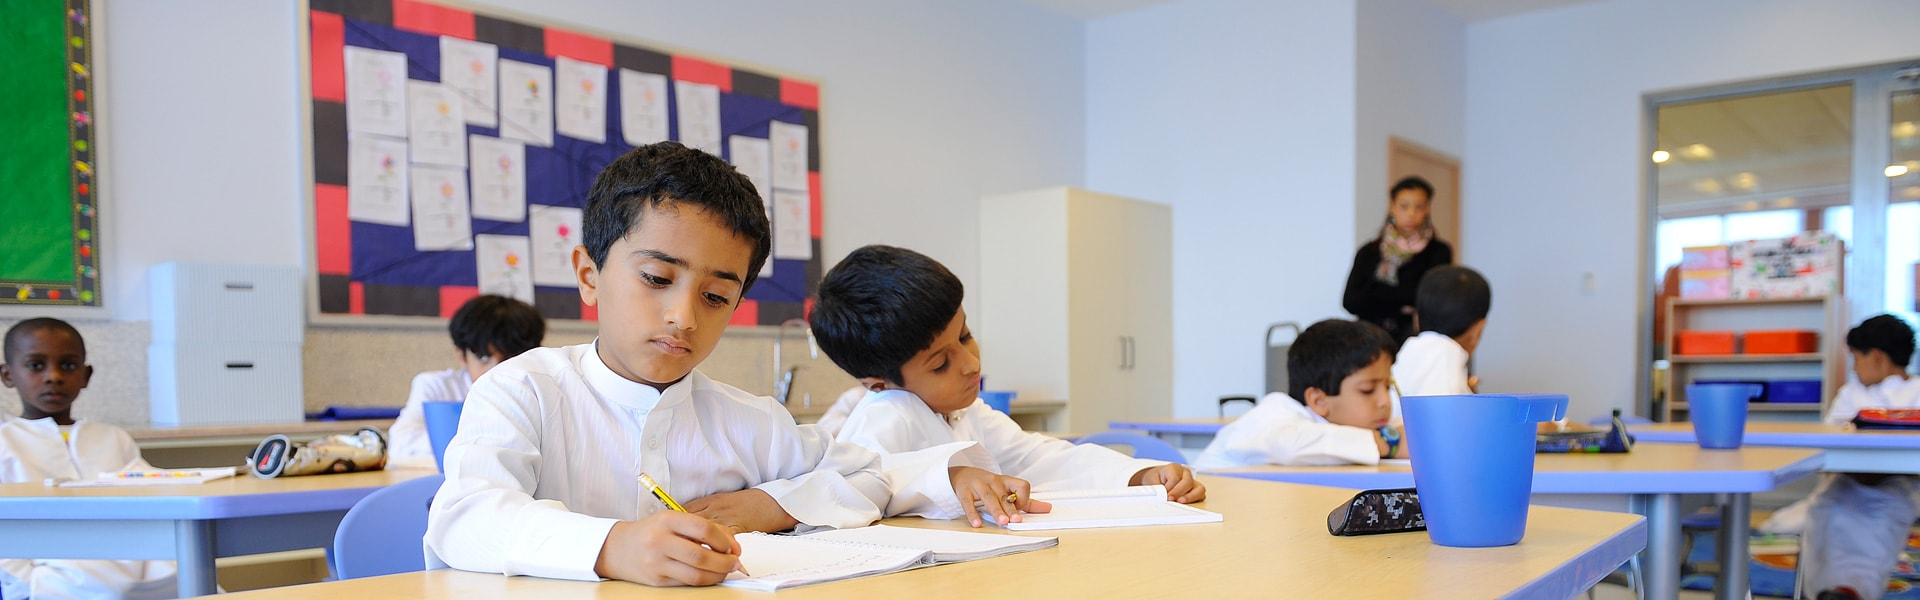 Young kids studying in a classroom in Abu Dhabi